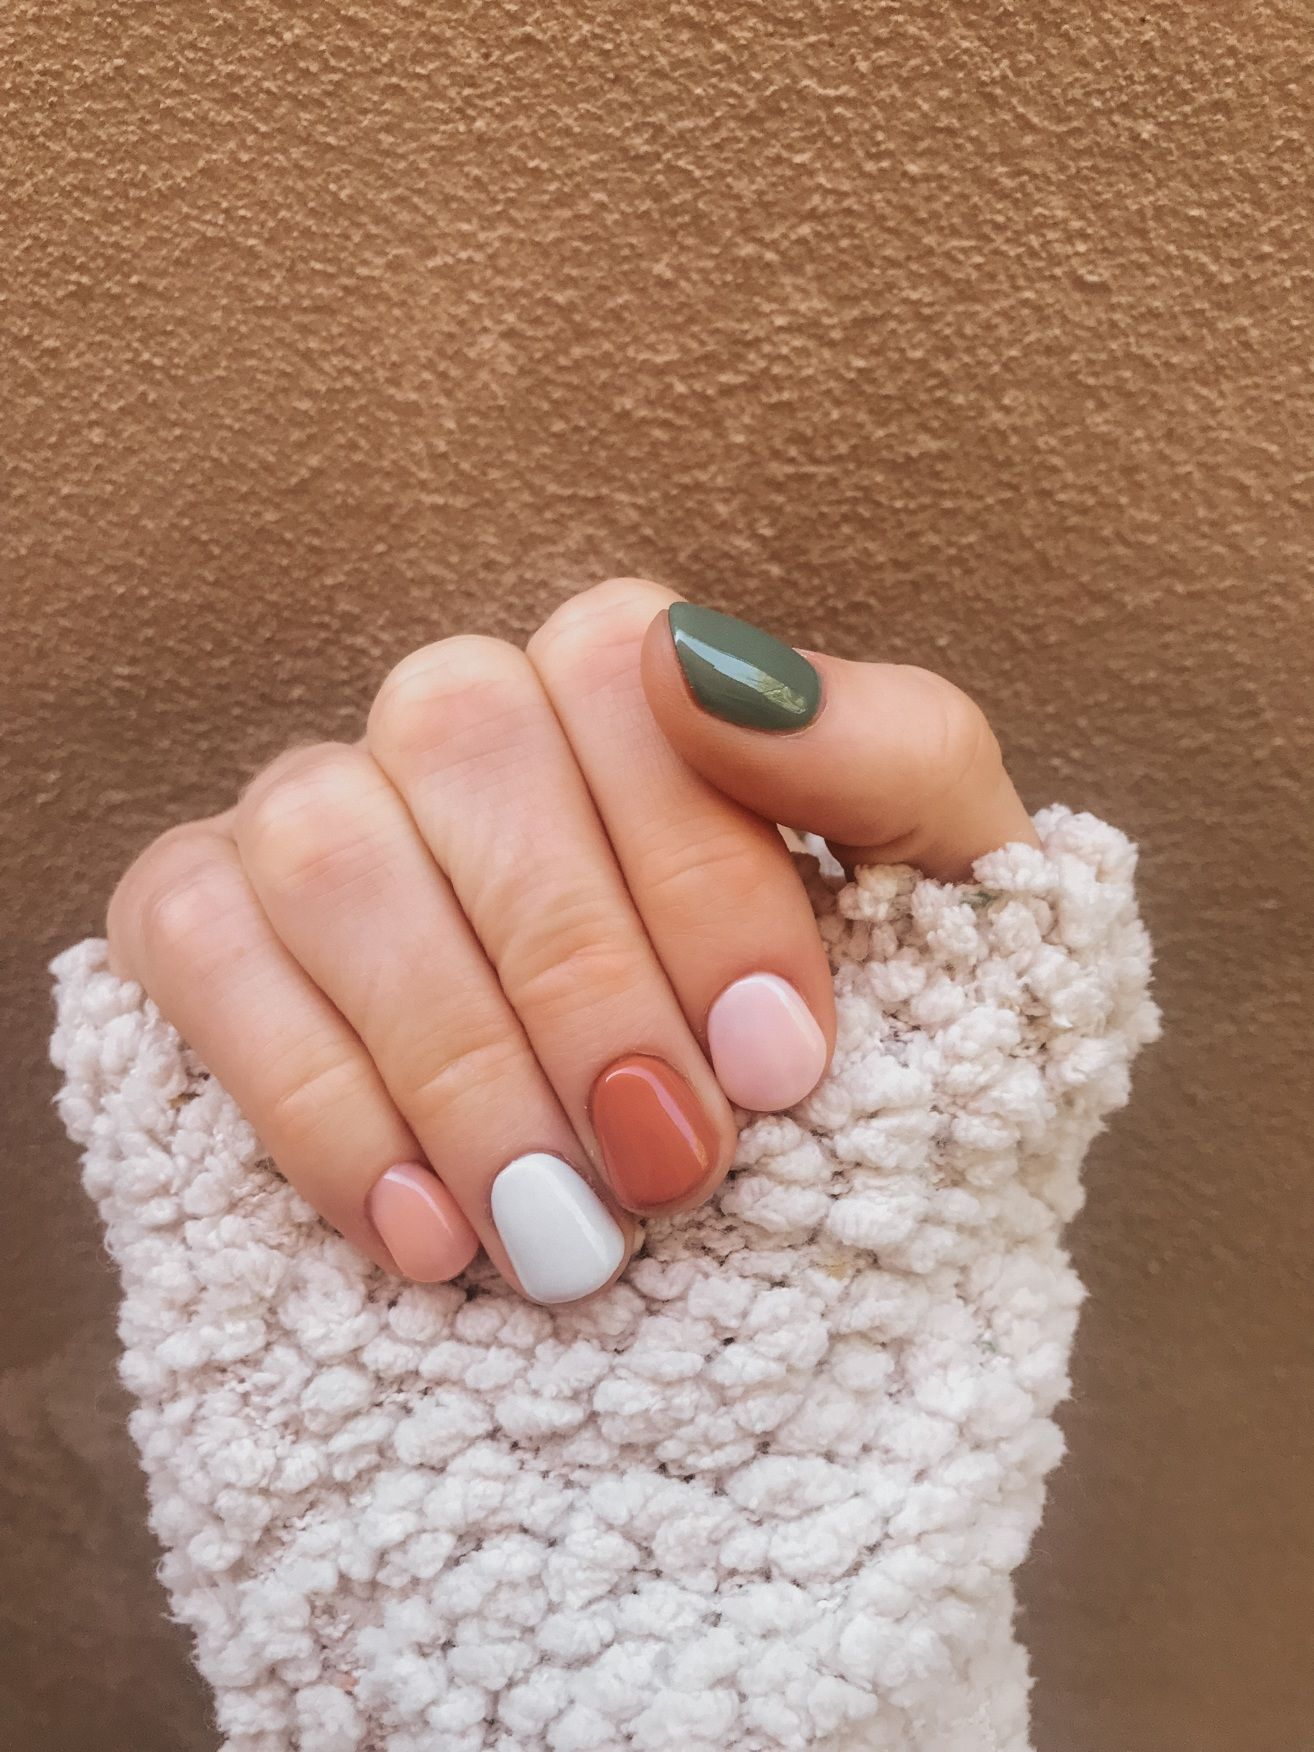 Fall nails roundup: cute manicure ideas to try this season - Mint Arrow